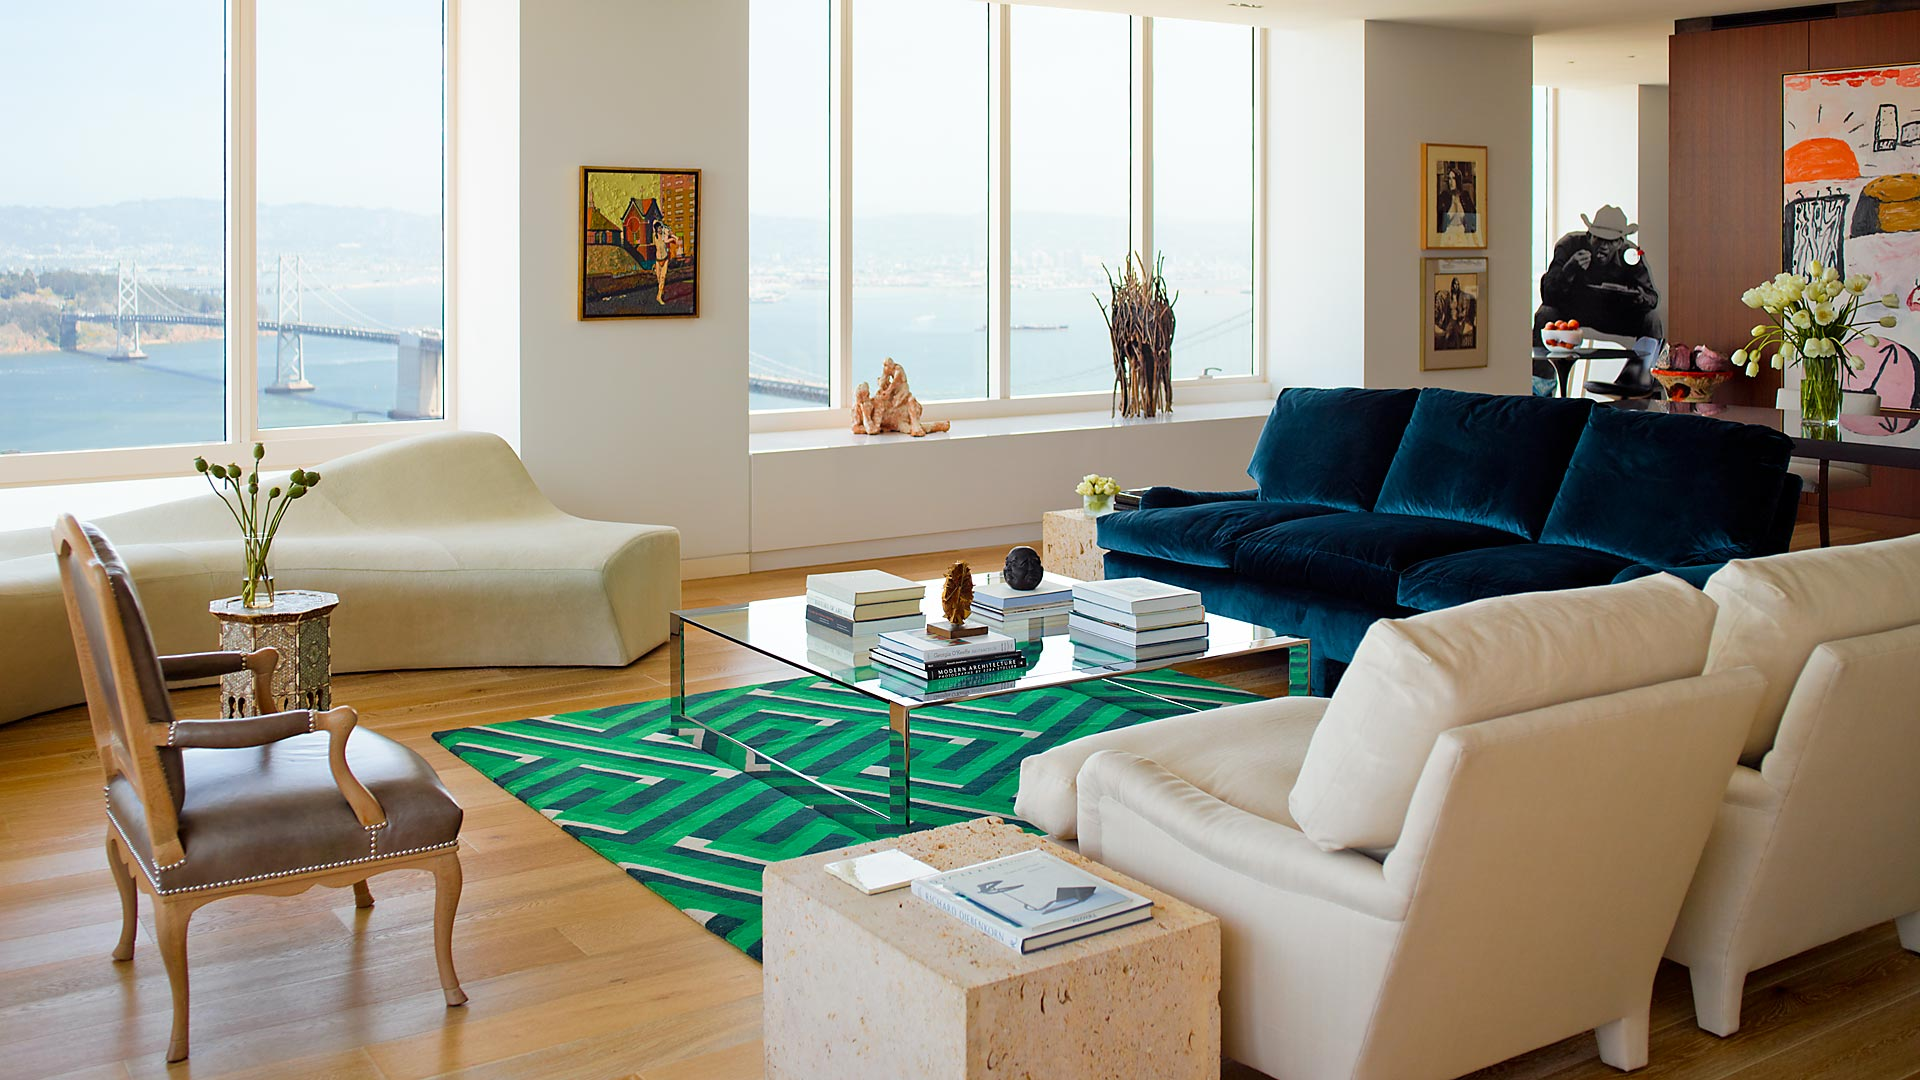 Millennium Tower San Francisco Residence Living Room- interior design by BAMO